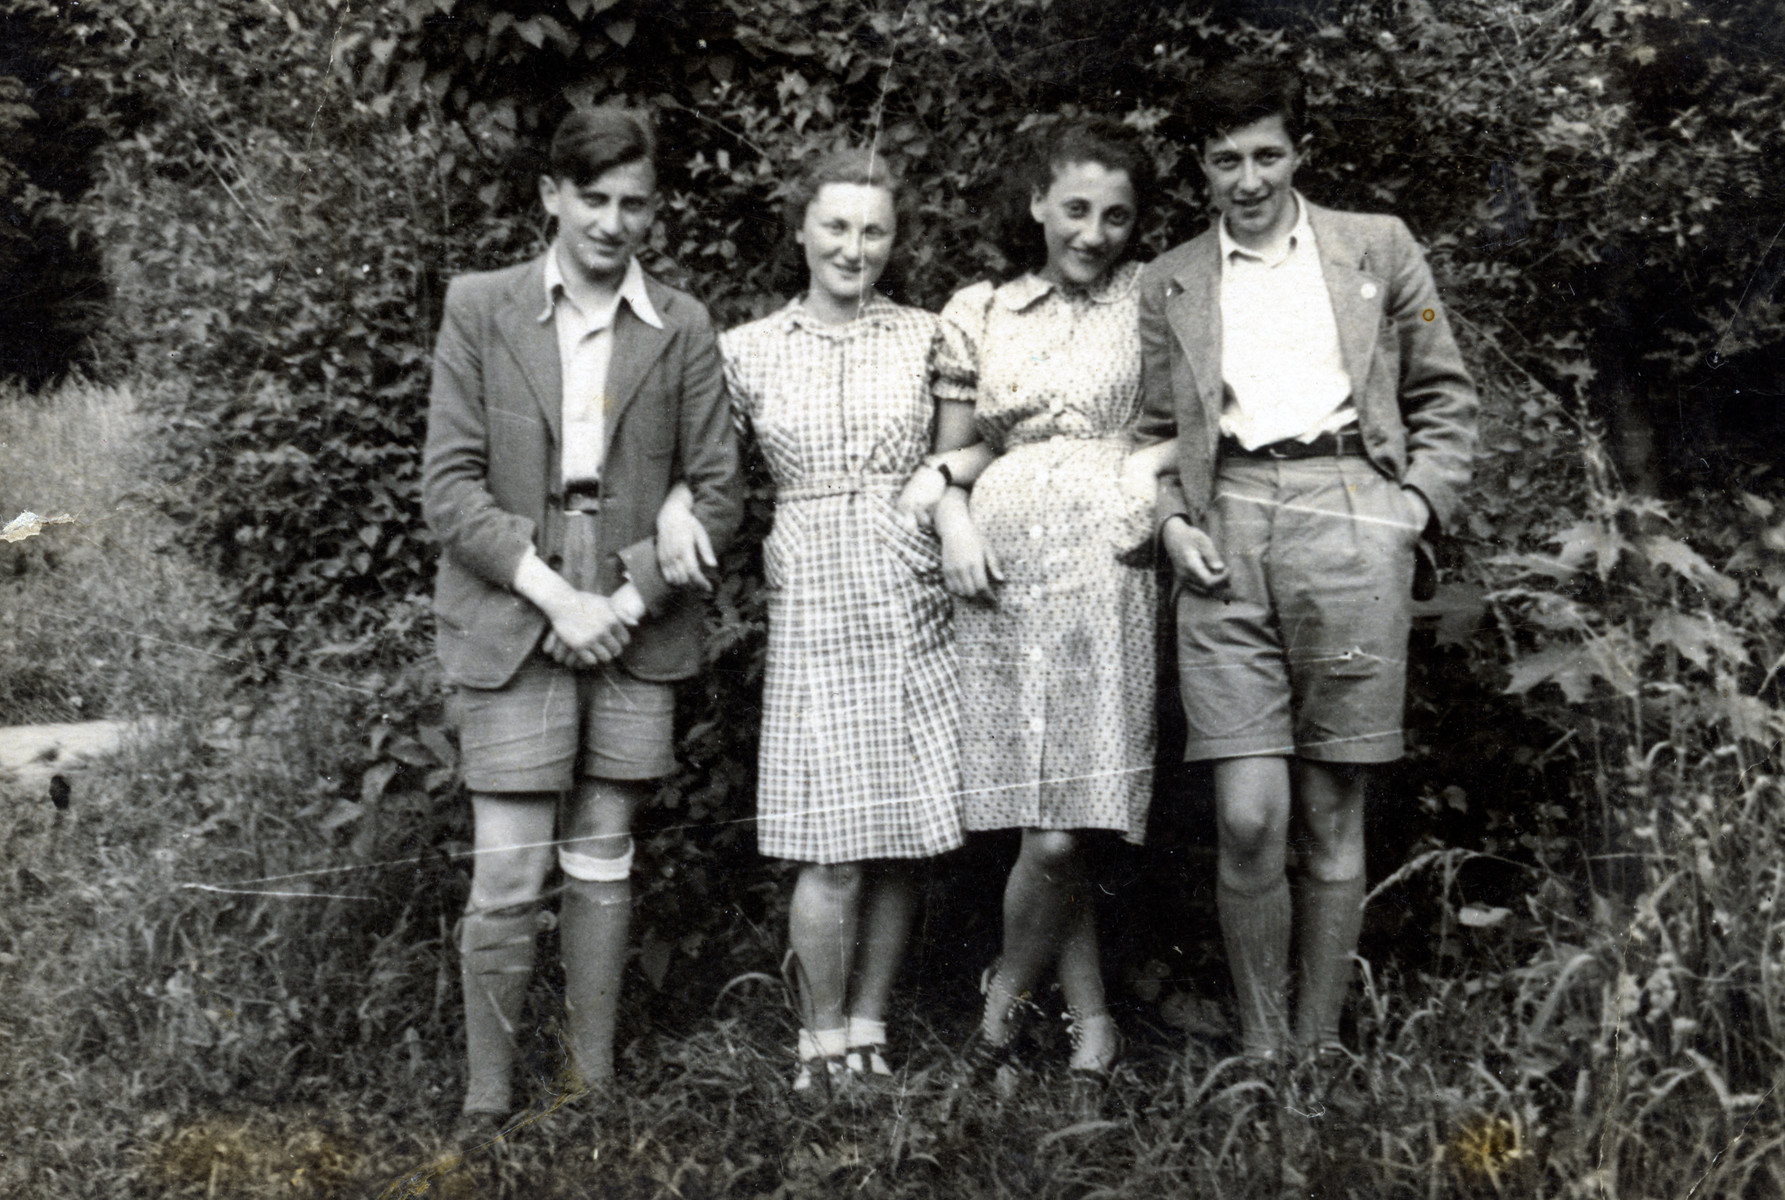 A group of Jewish youth pose in a park during the Soviet occupation of Cernauti/Czernovitz.  Thea Kollenberg (pictured second from the right) with her friends from school (Sheva Hoenig second from the left, Ossie Nagle on the far left, and Kurt Sherf on the far right).